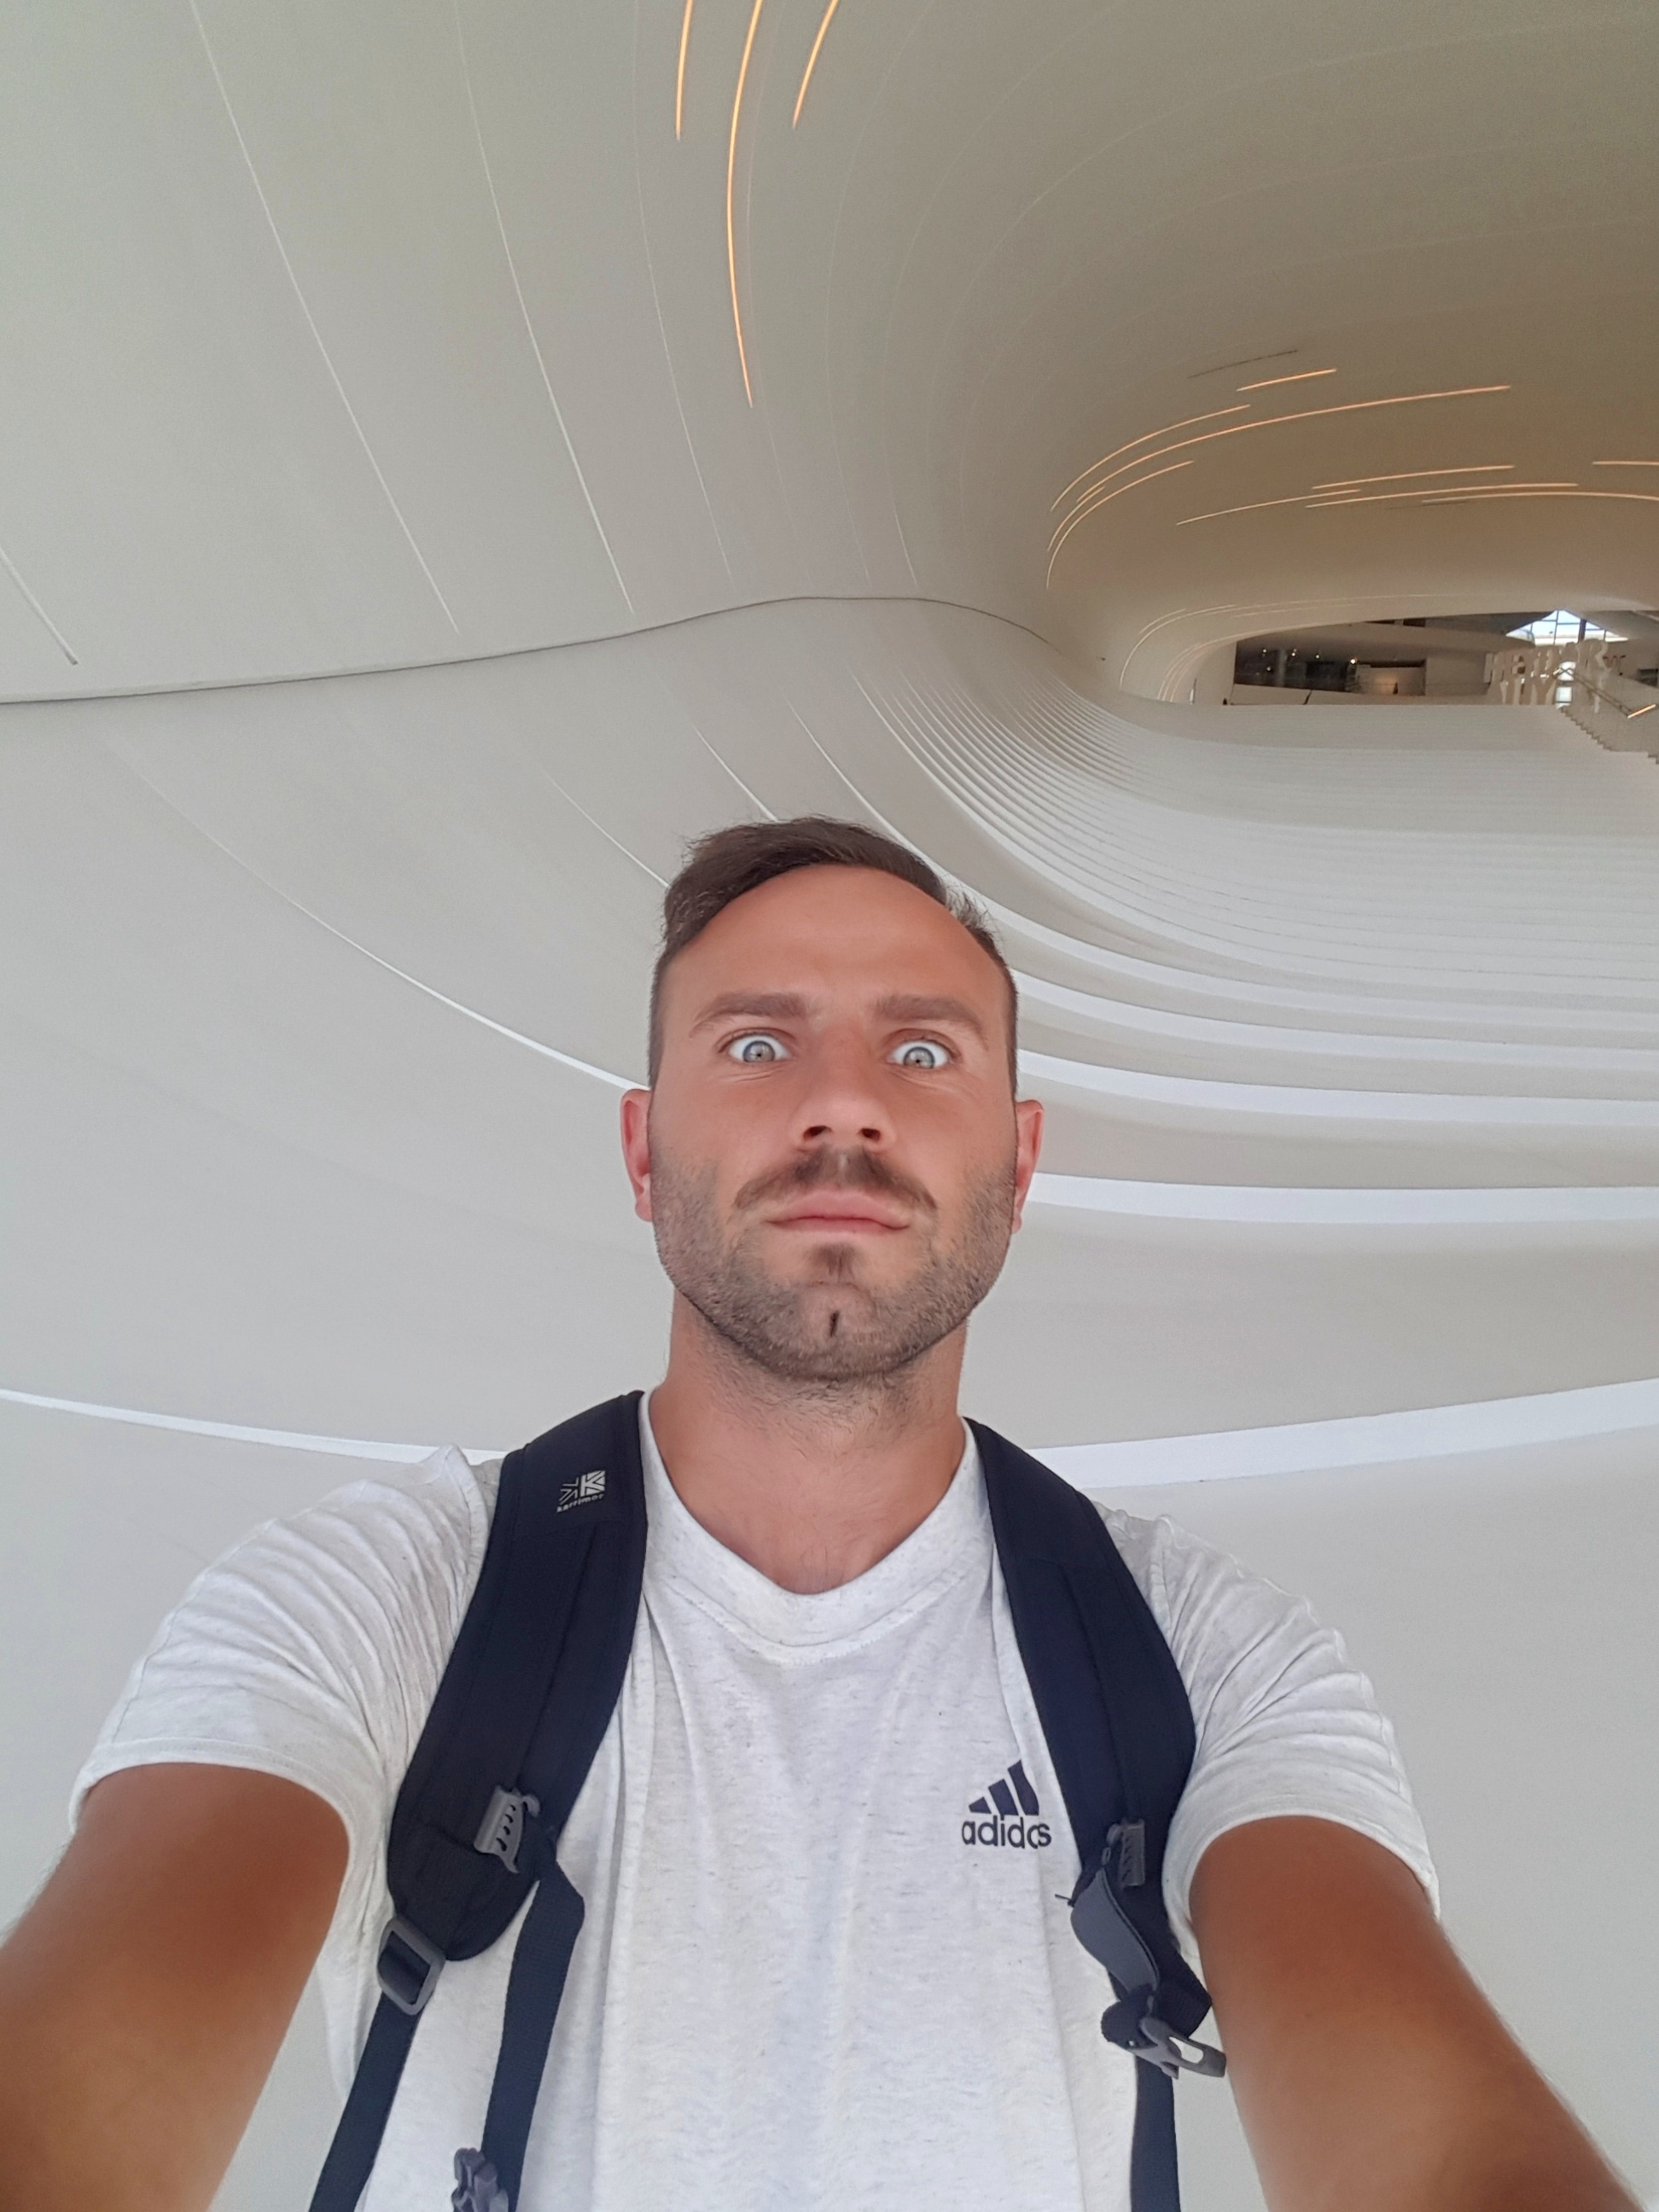 In the middle of the spaceship. My moustache is intentional. My bum chin is not.